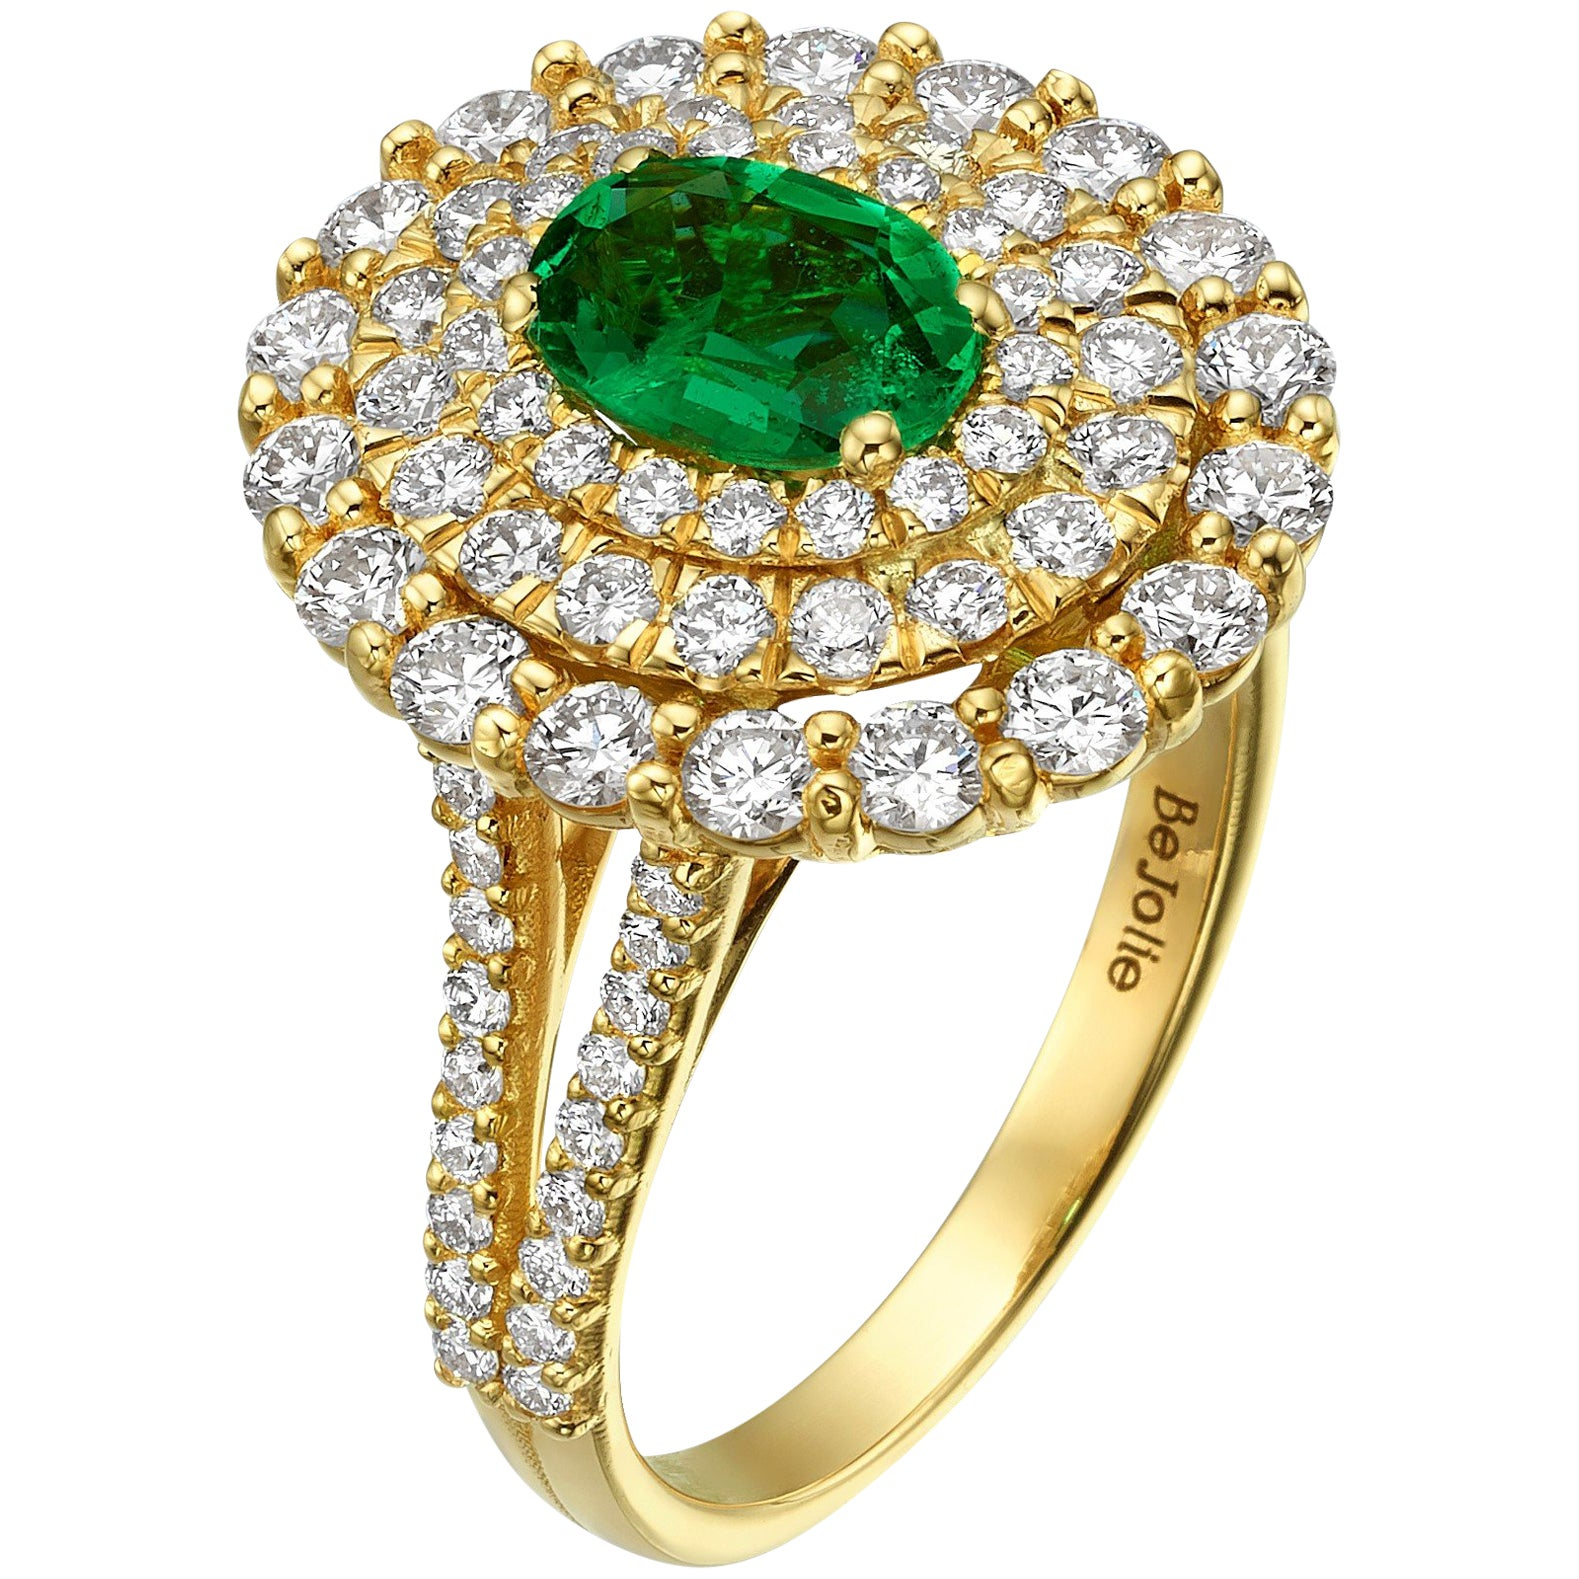 0.80 Carat Natural Emerald engagement Ring with triple Halo diamonds